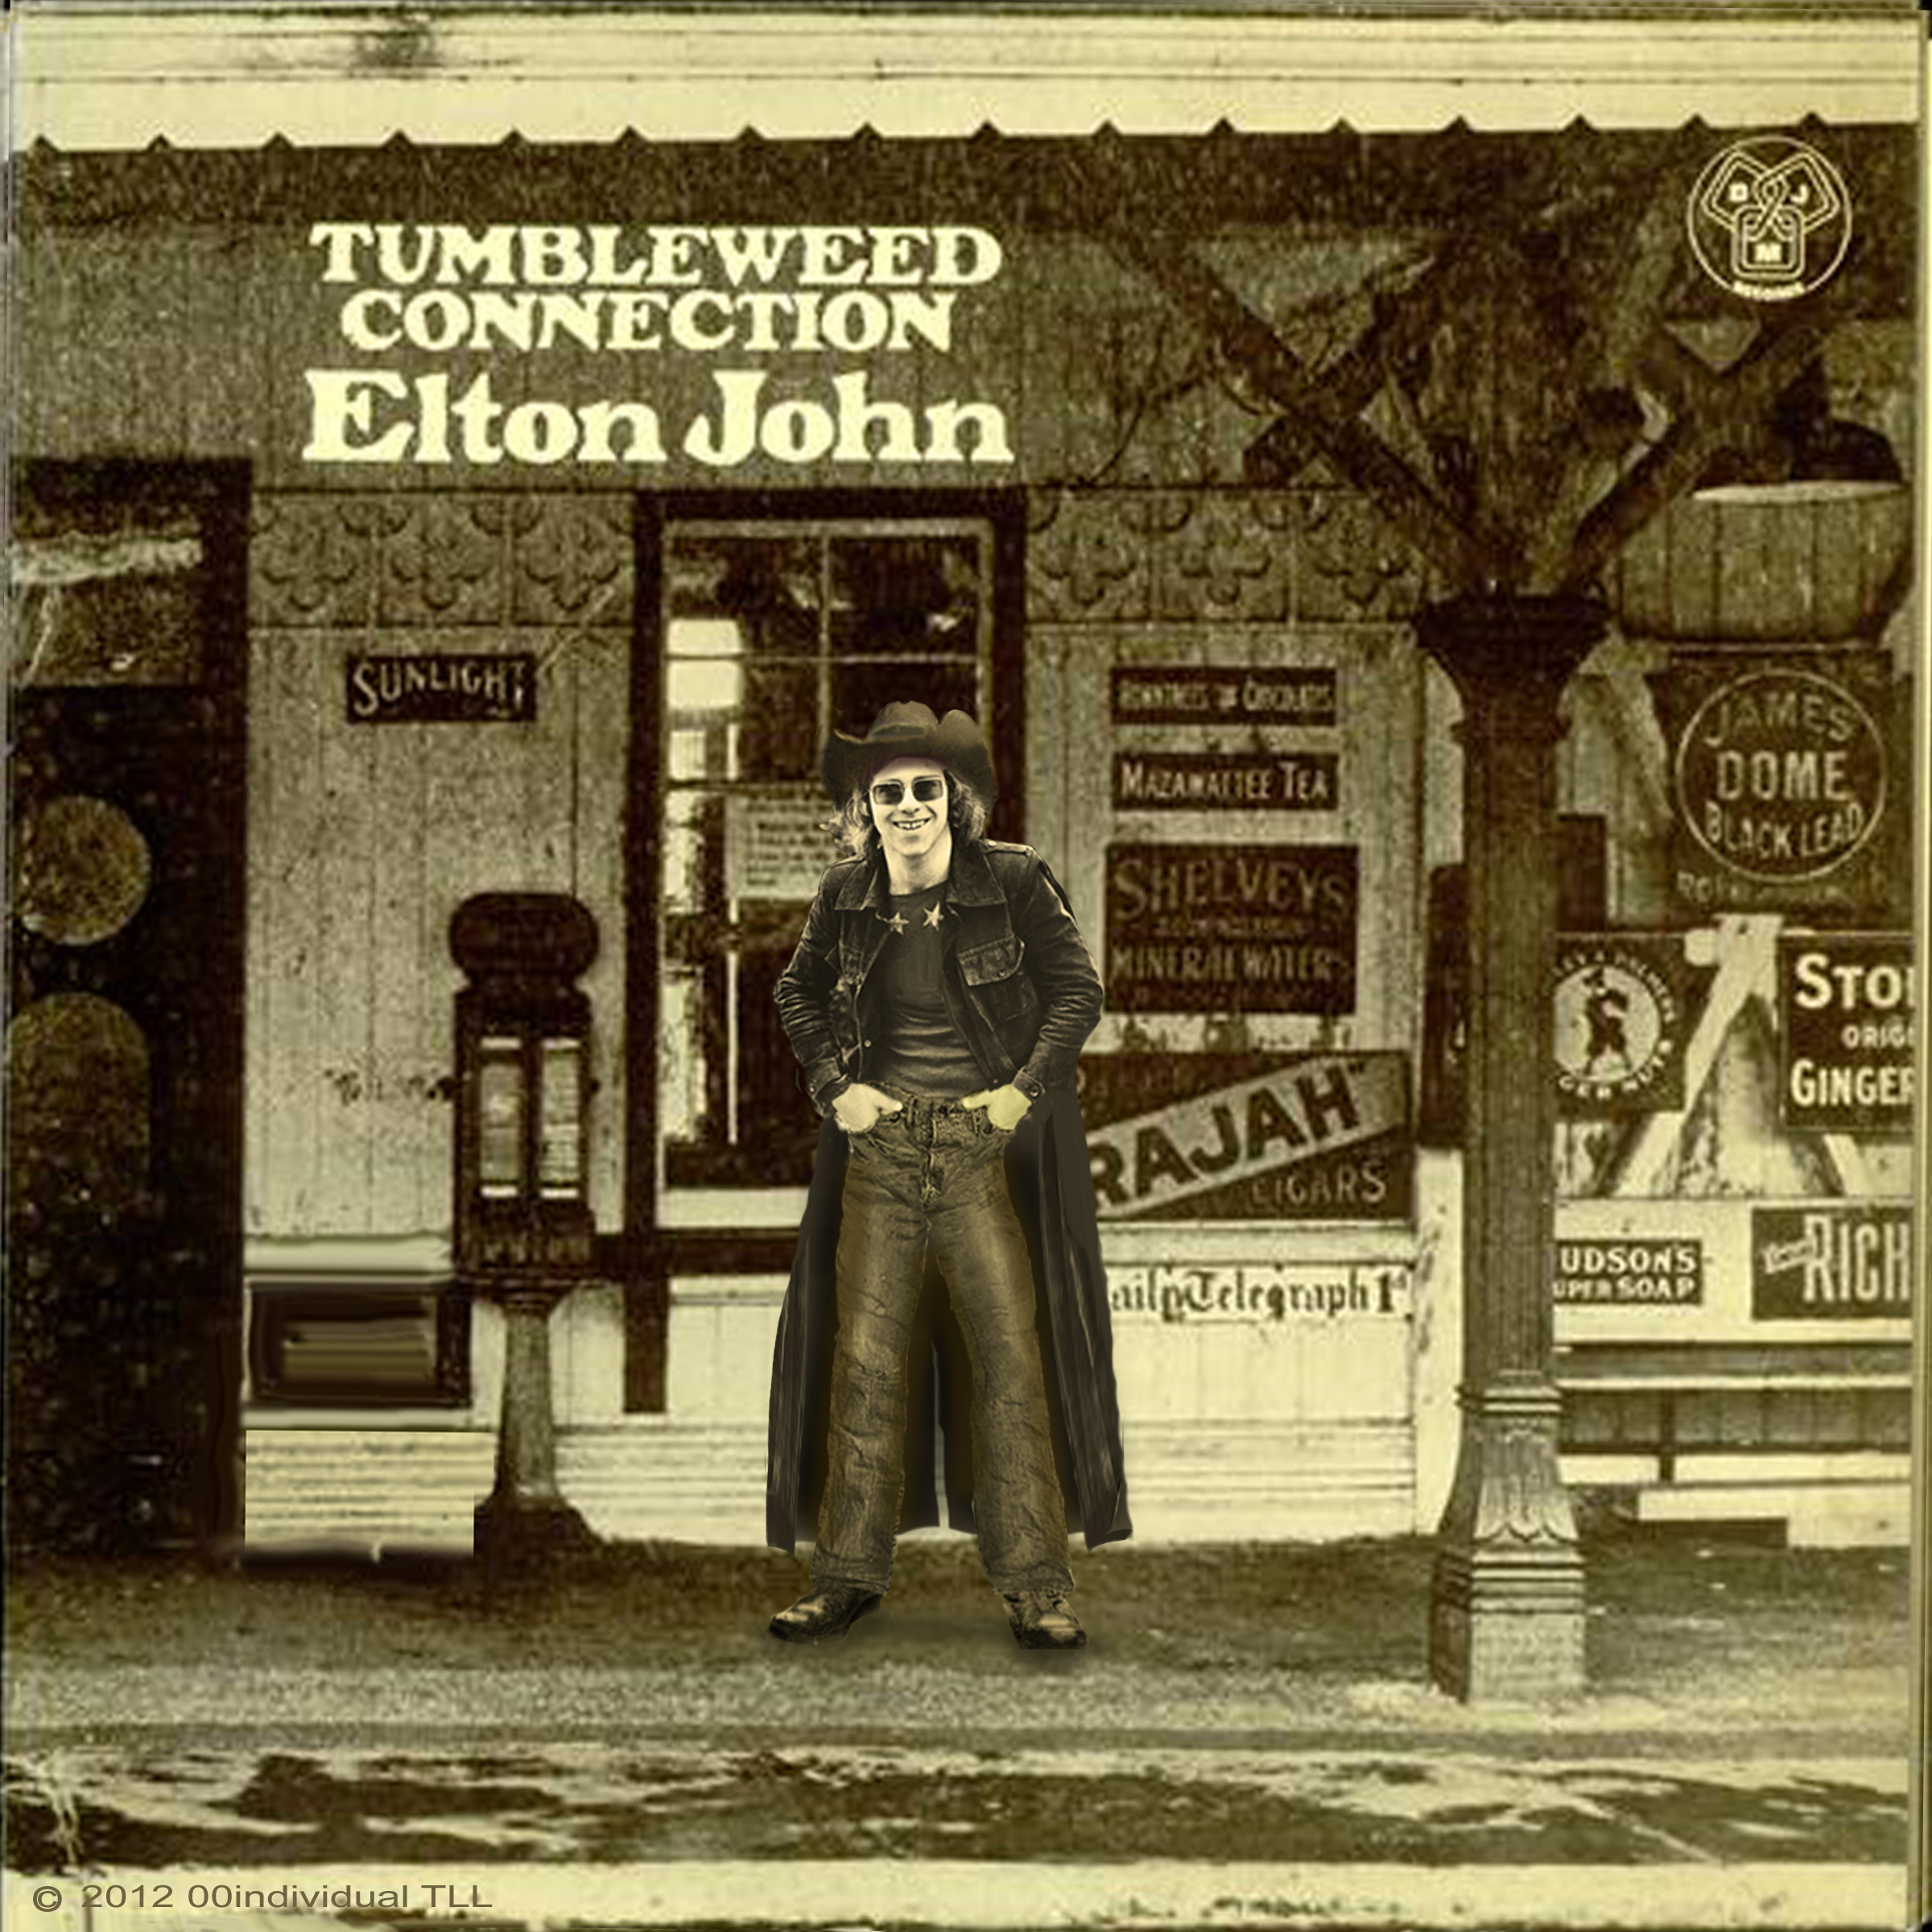 https://00individual.files.wordpress.com/2012/12/elton-john-tumbleweed-connect.jpg